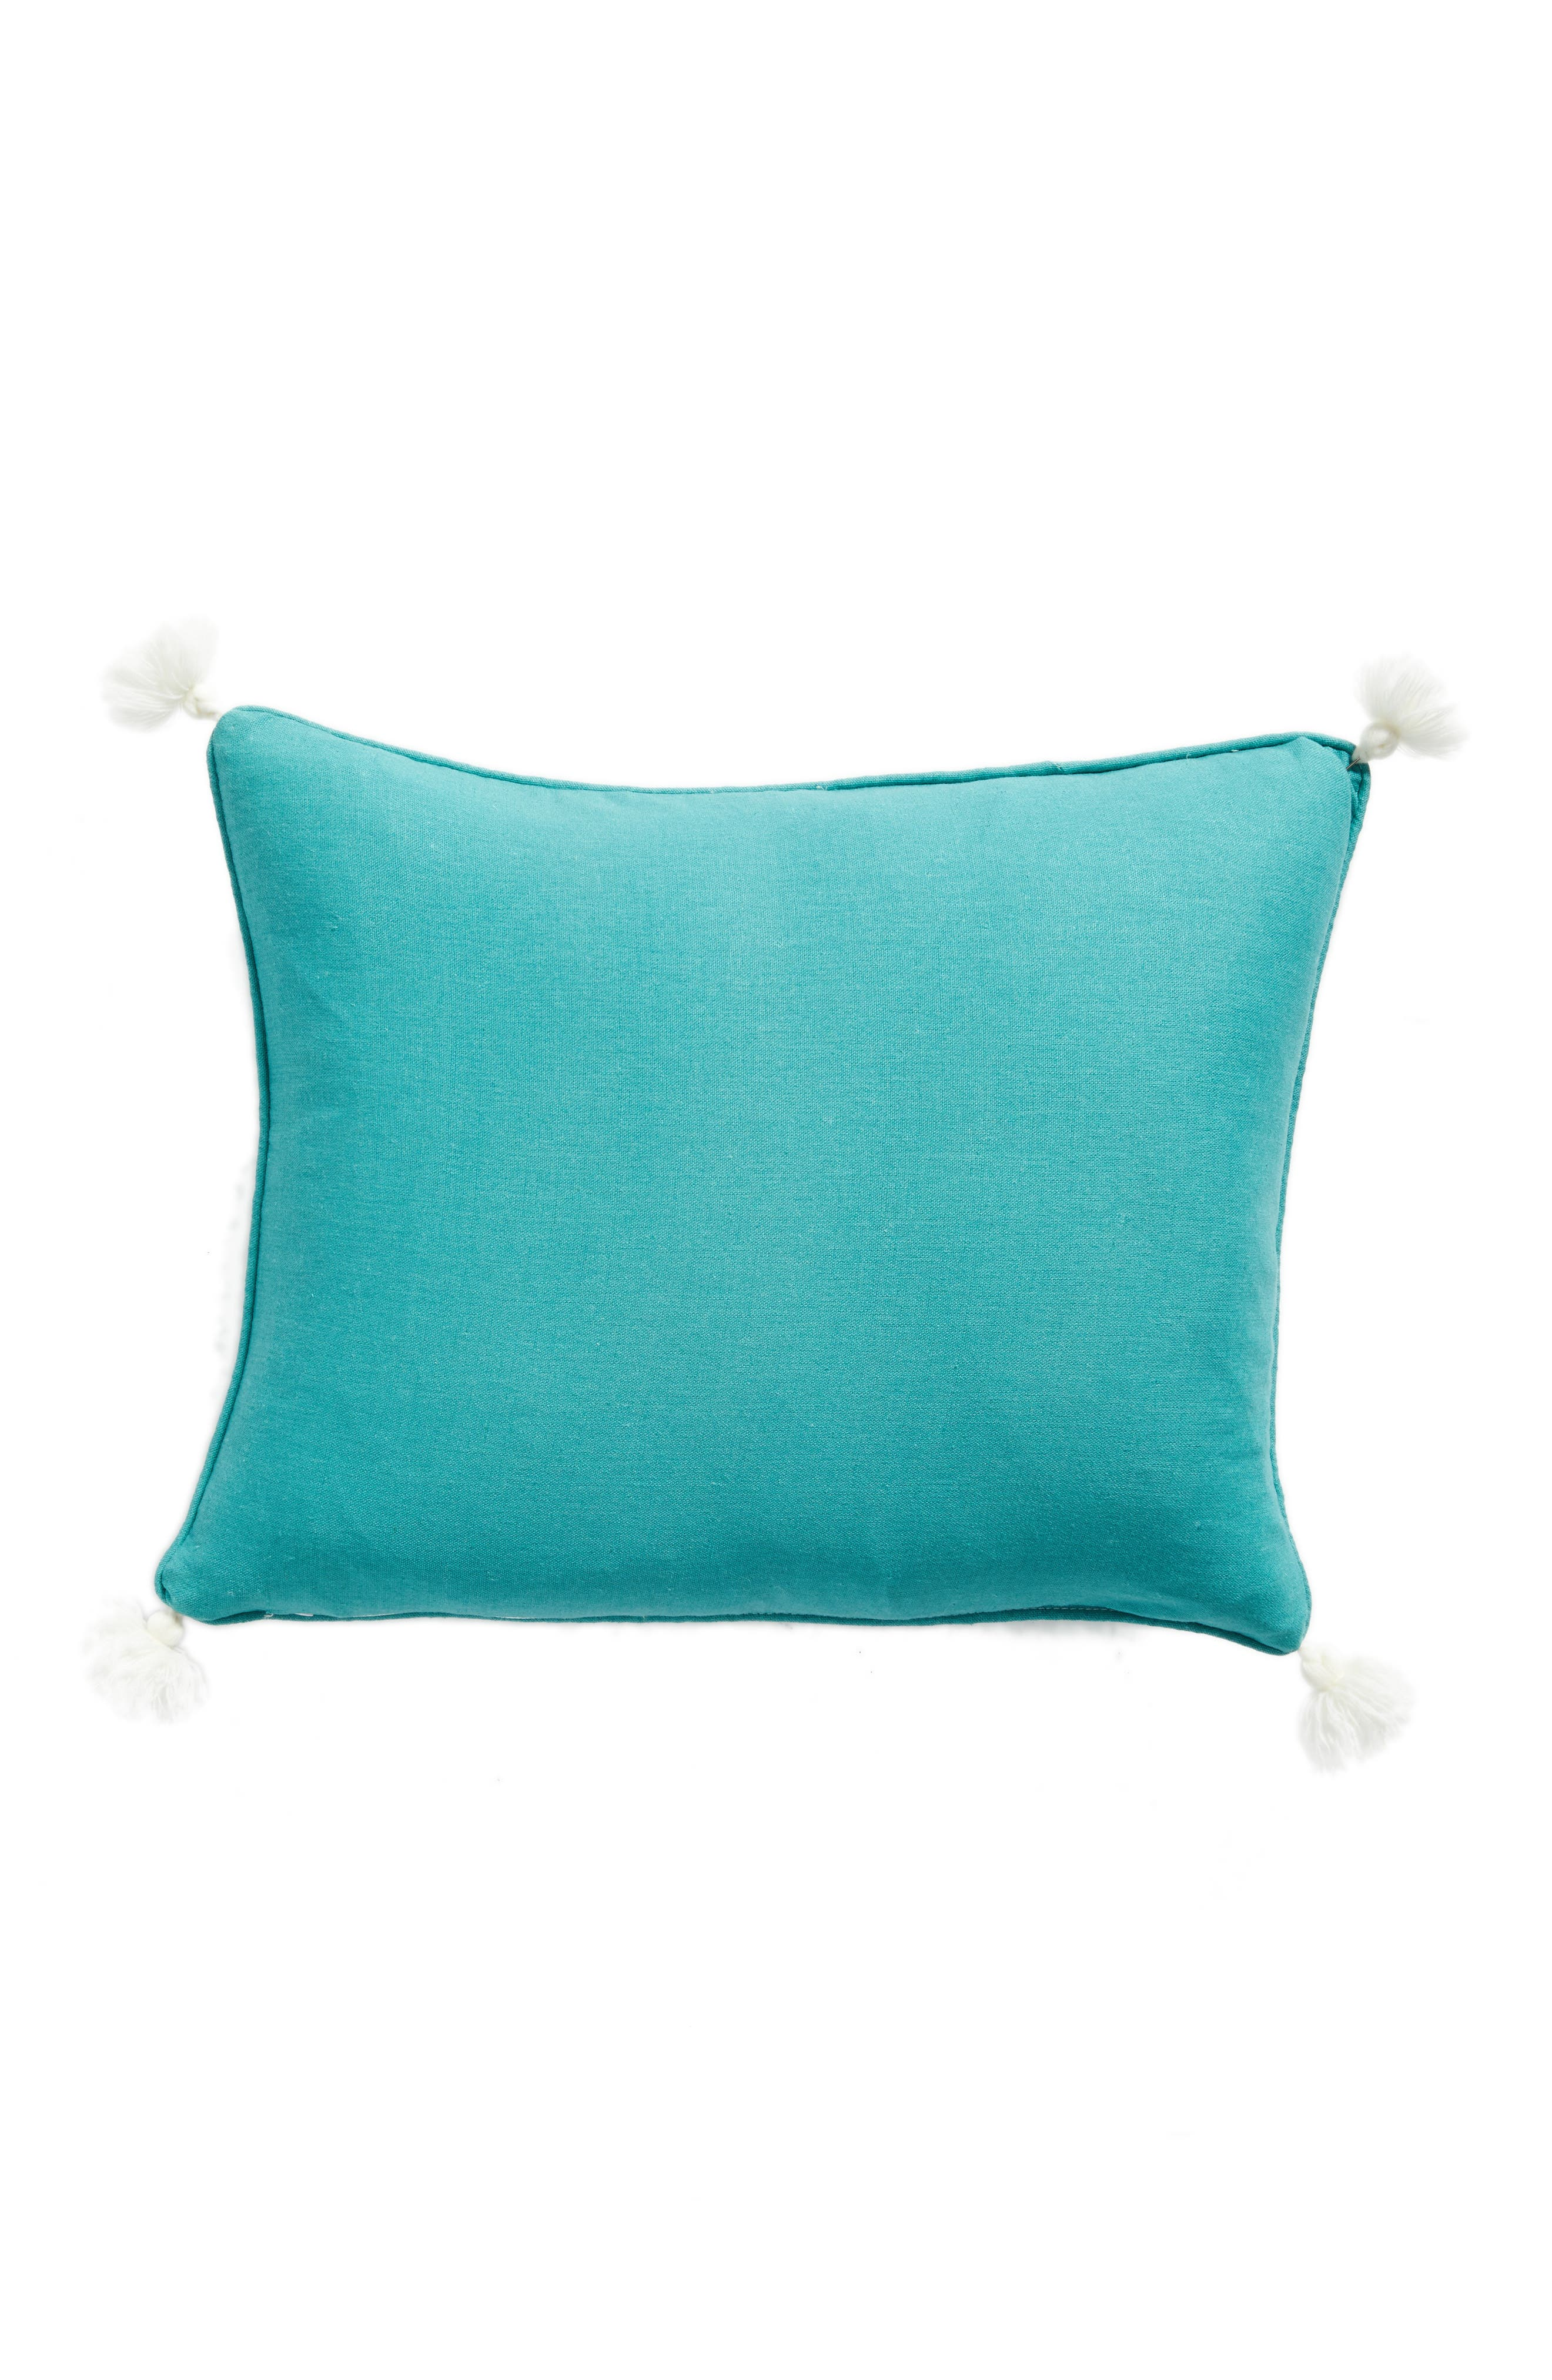 Merry Fitmas Pillow,                             Alternate thumbnail 2, color,                             400